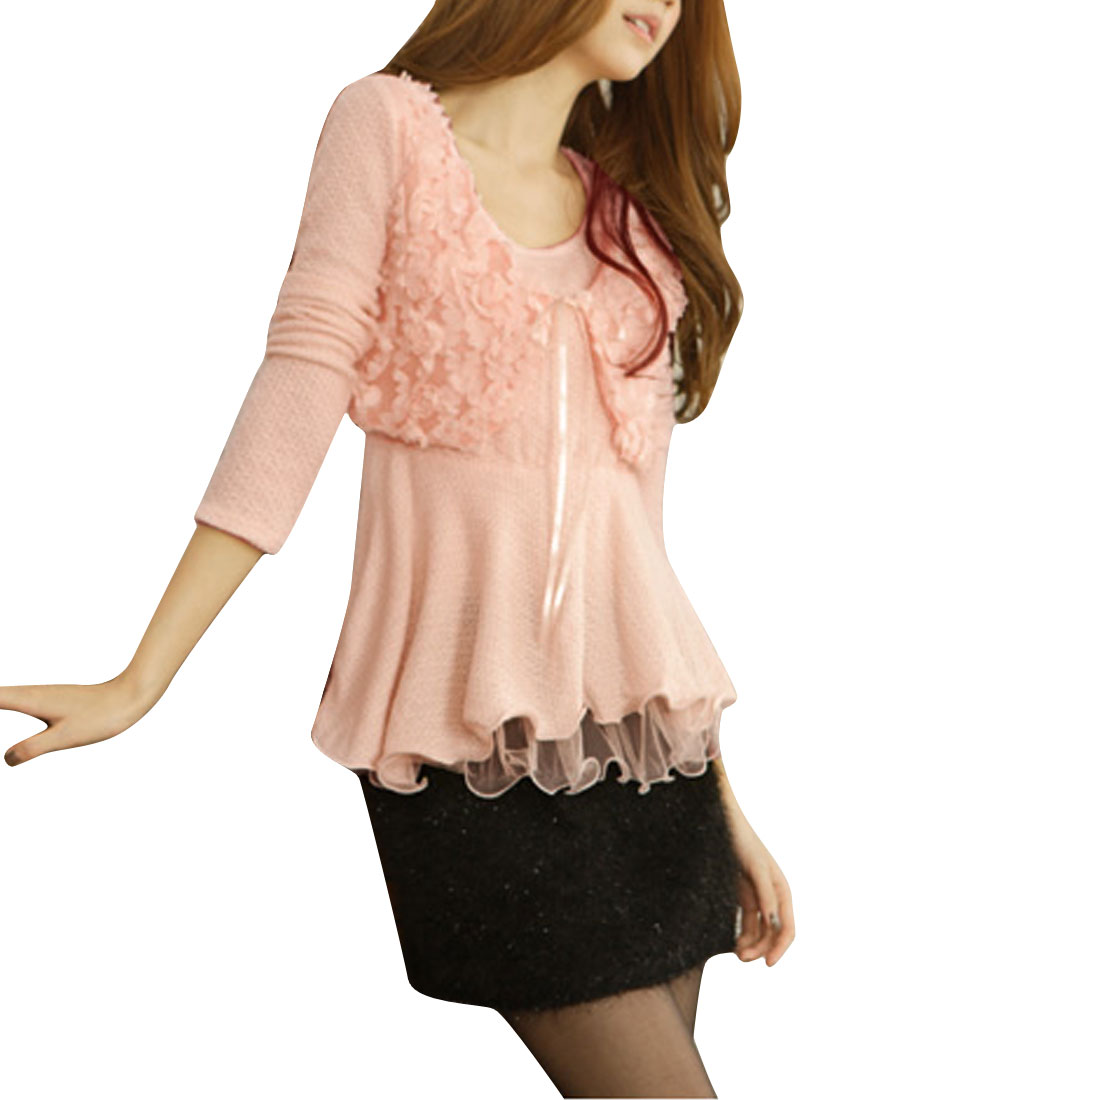 Pure Light Pink Lace-Up Patchwork Front Knitted Peplum Top for Lady XS